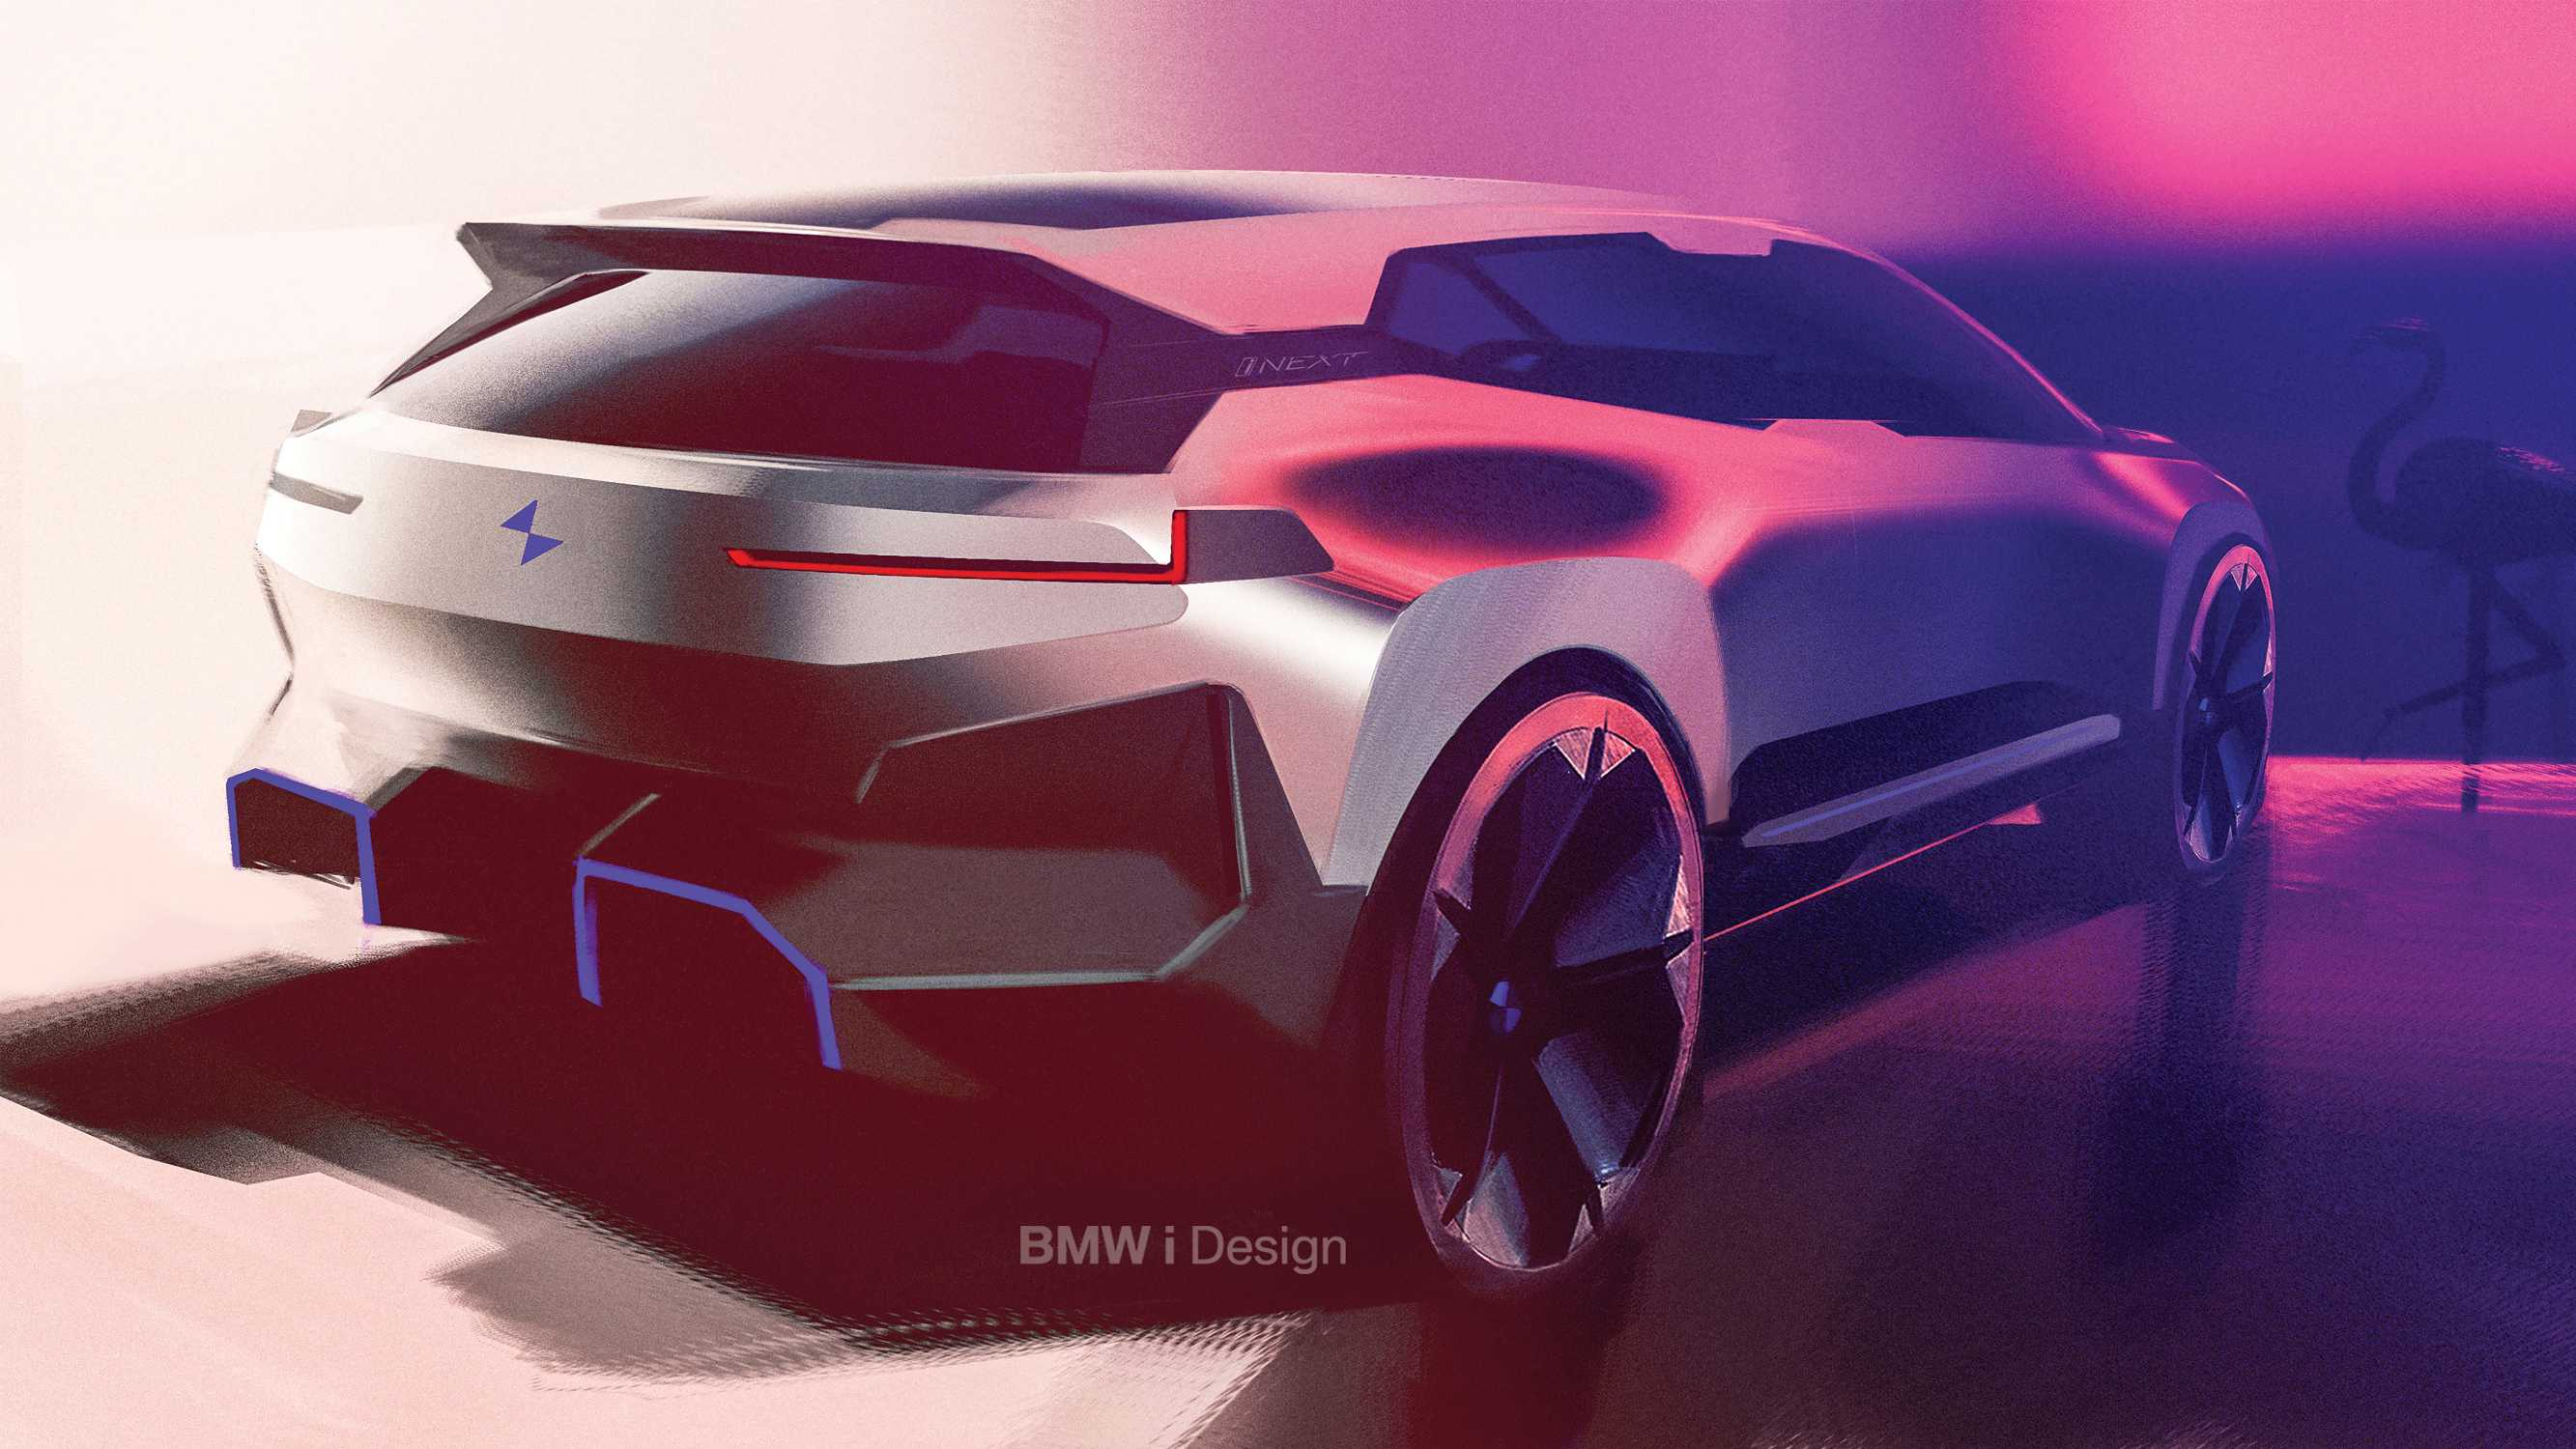 Bmw Vision Inext Design Sketches 09 2018